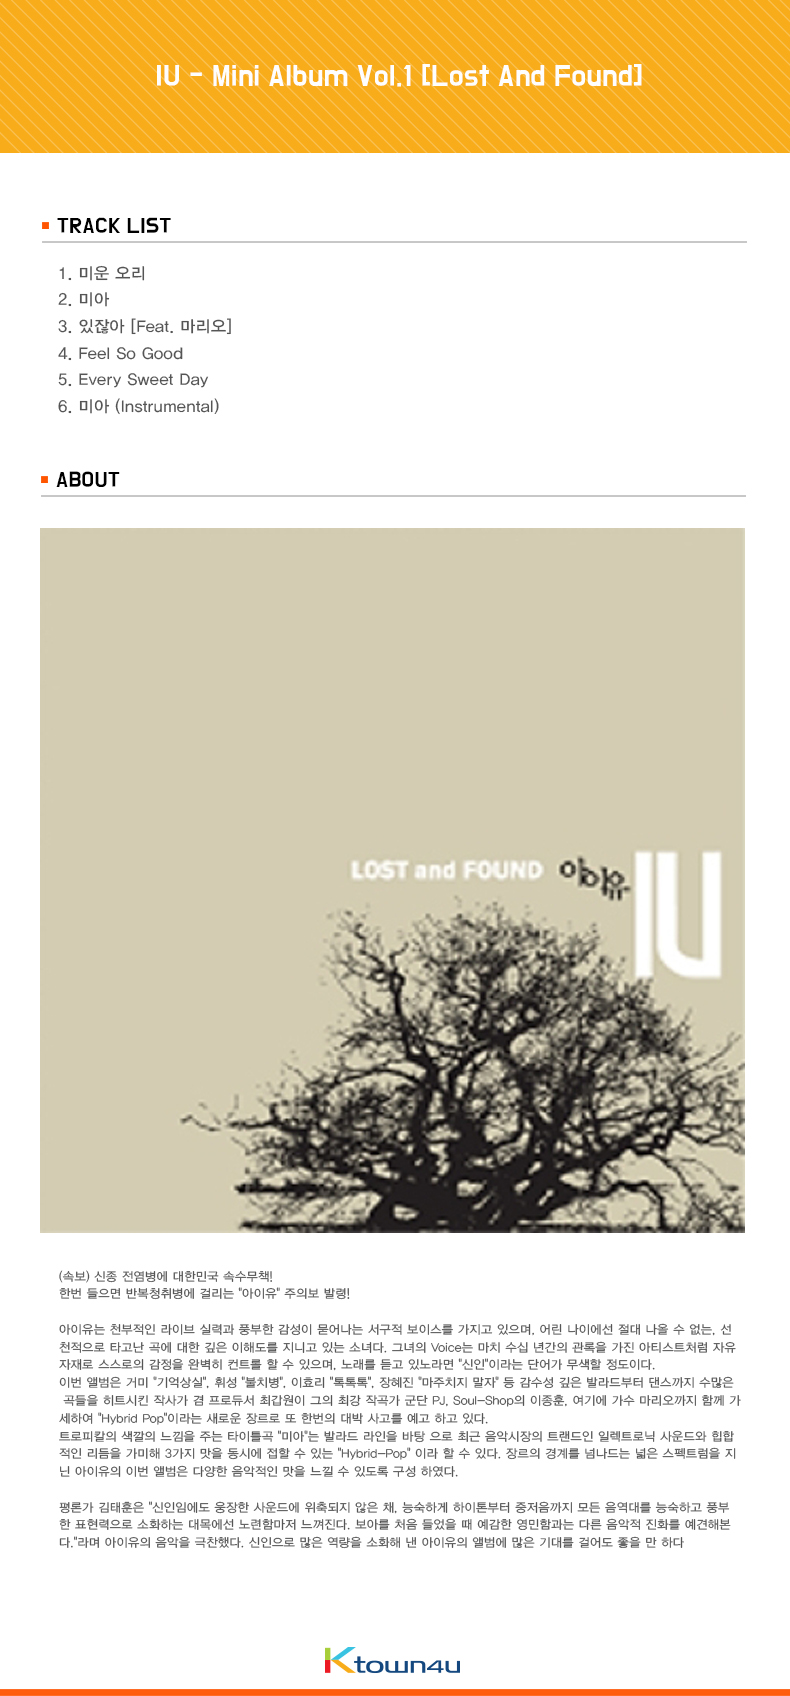 IU - Lost And Found